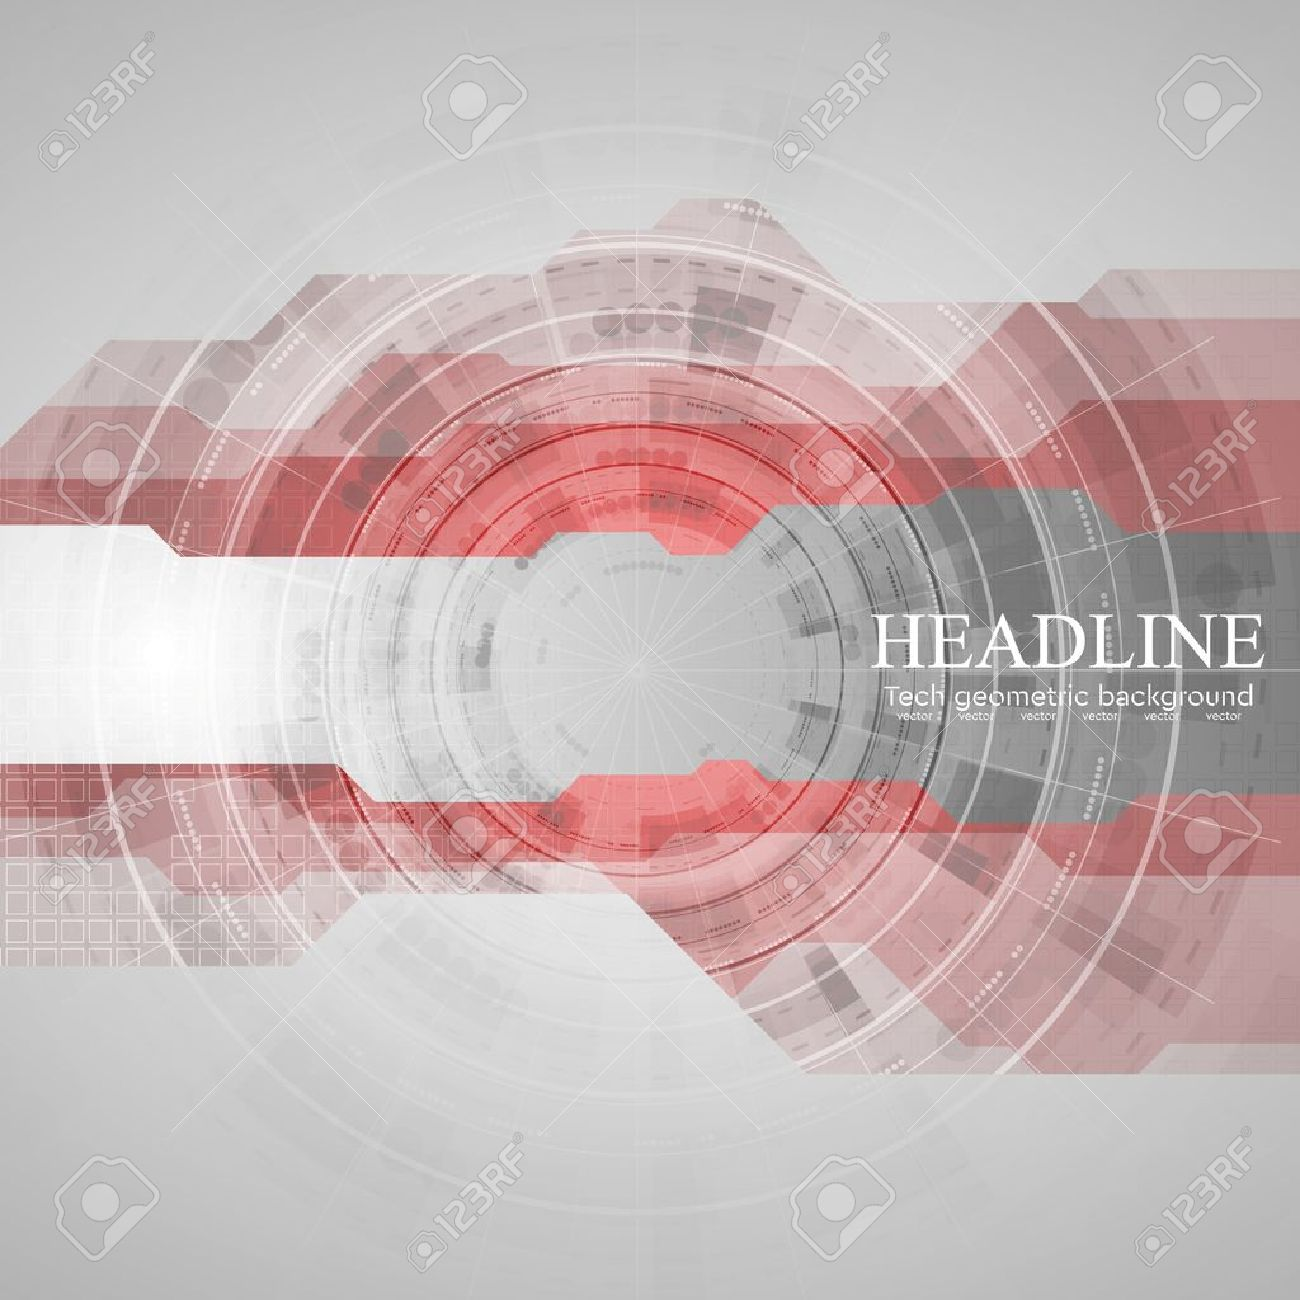 Tech geometric drawing background with gear. Red grey vector design template - 52531340